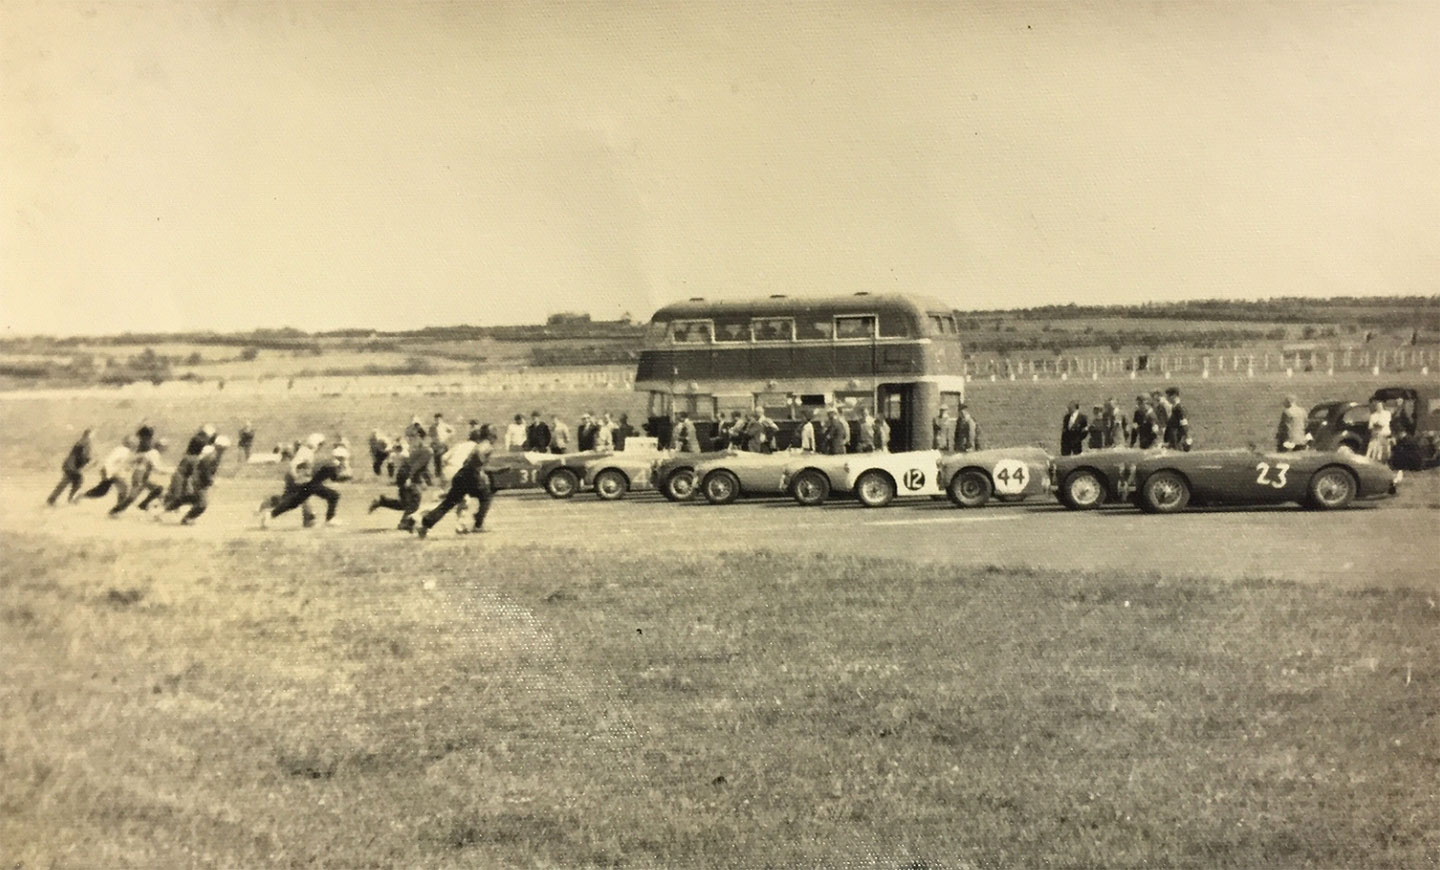 1956 and shows the start of a race for Austin Healeys and Triumph TR2s.